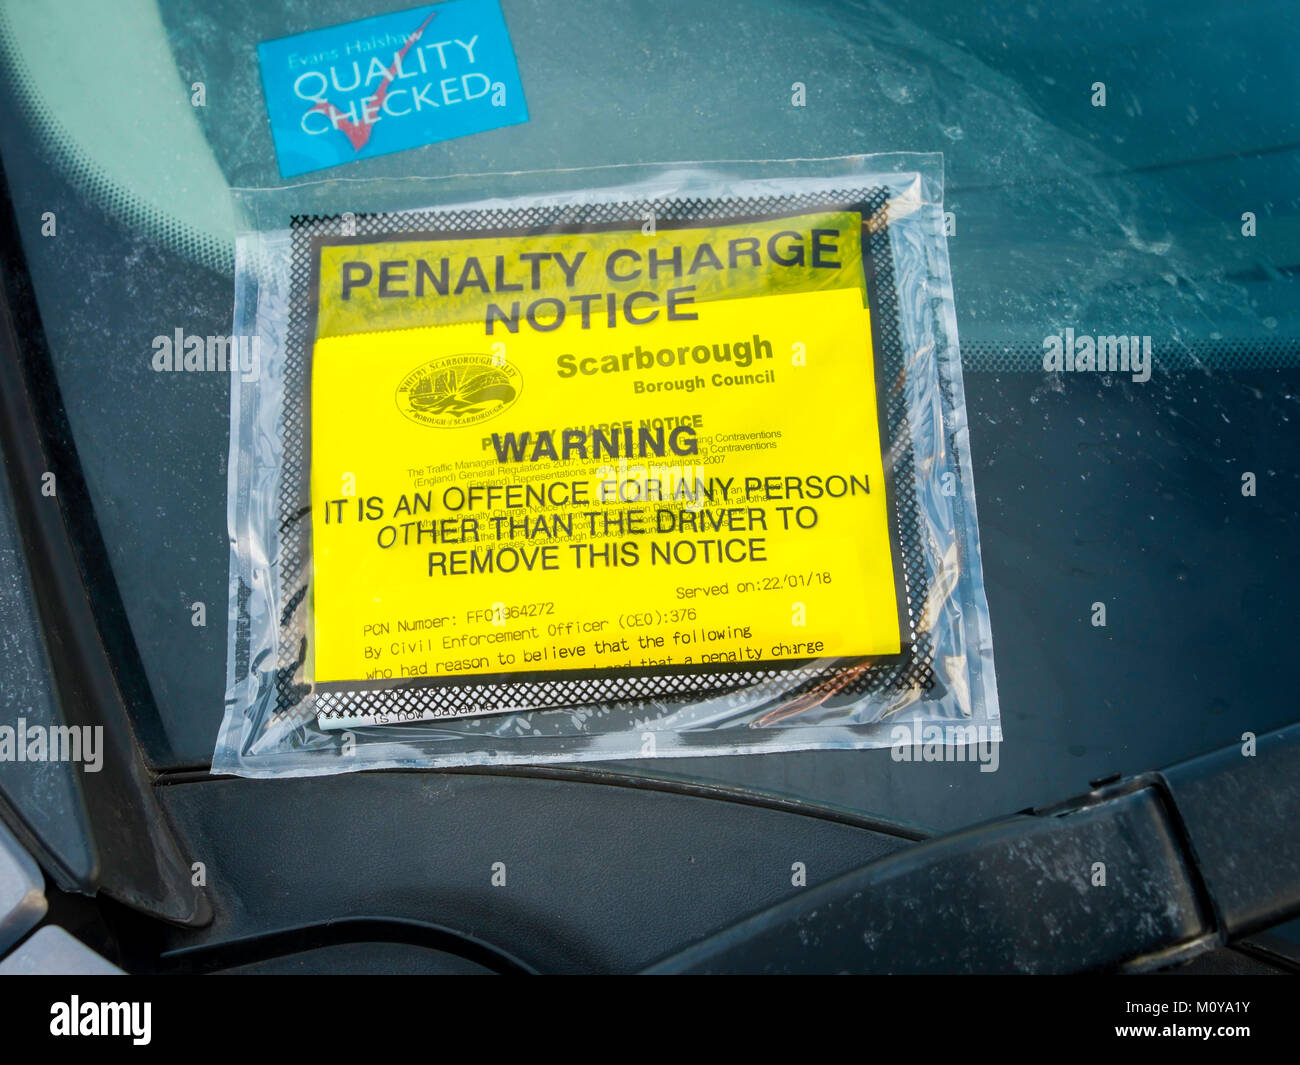 Penalty Charge Notice on a car that has failed to display a valid  paid parking ticket issued by  Scarborough Borough - Stock Image